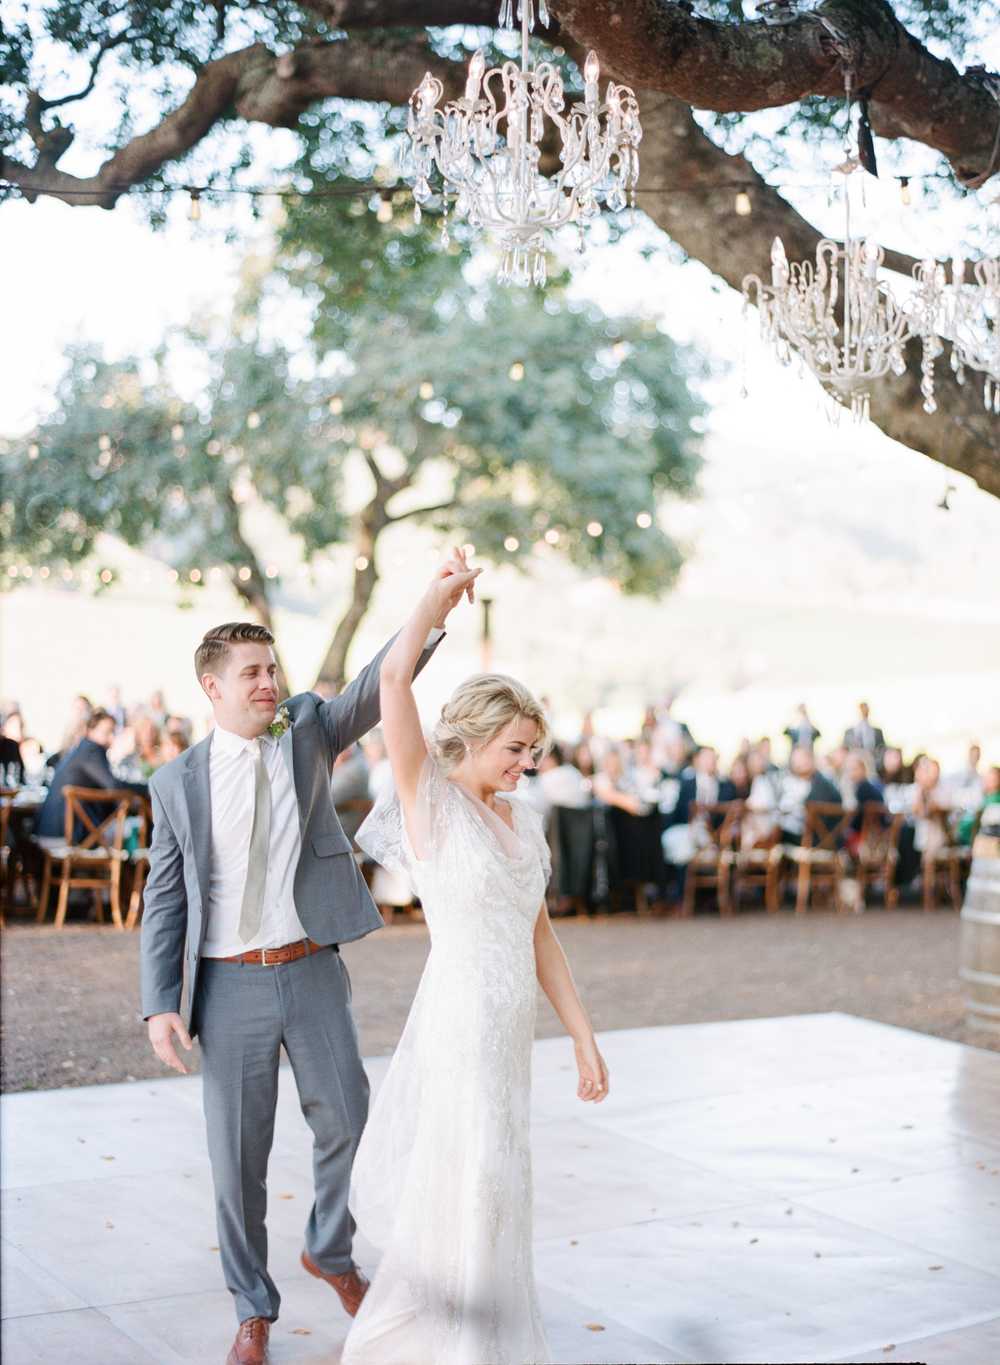 Chandeliers hang from the oaks over the dance floor as the couple takes their first dance; photo by Sylvie Gil